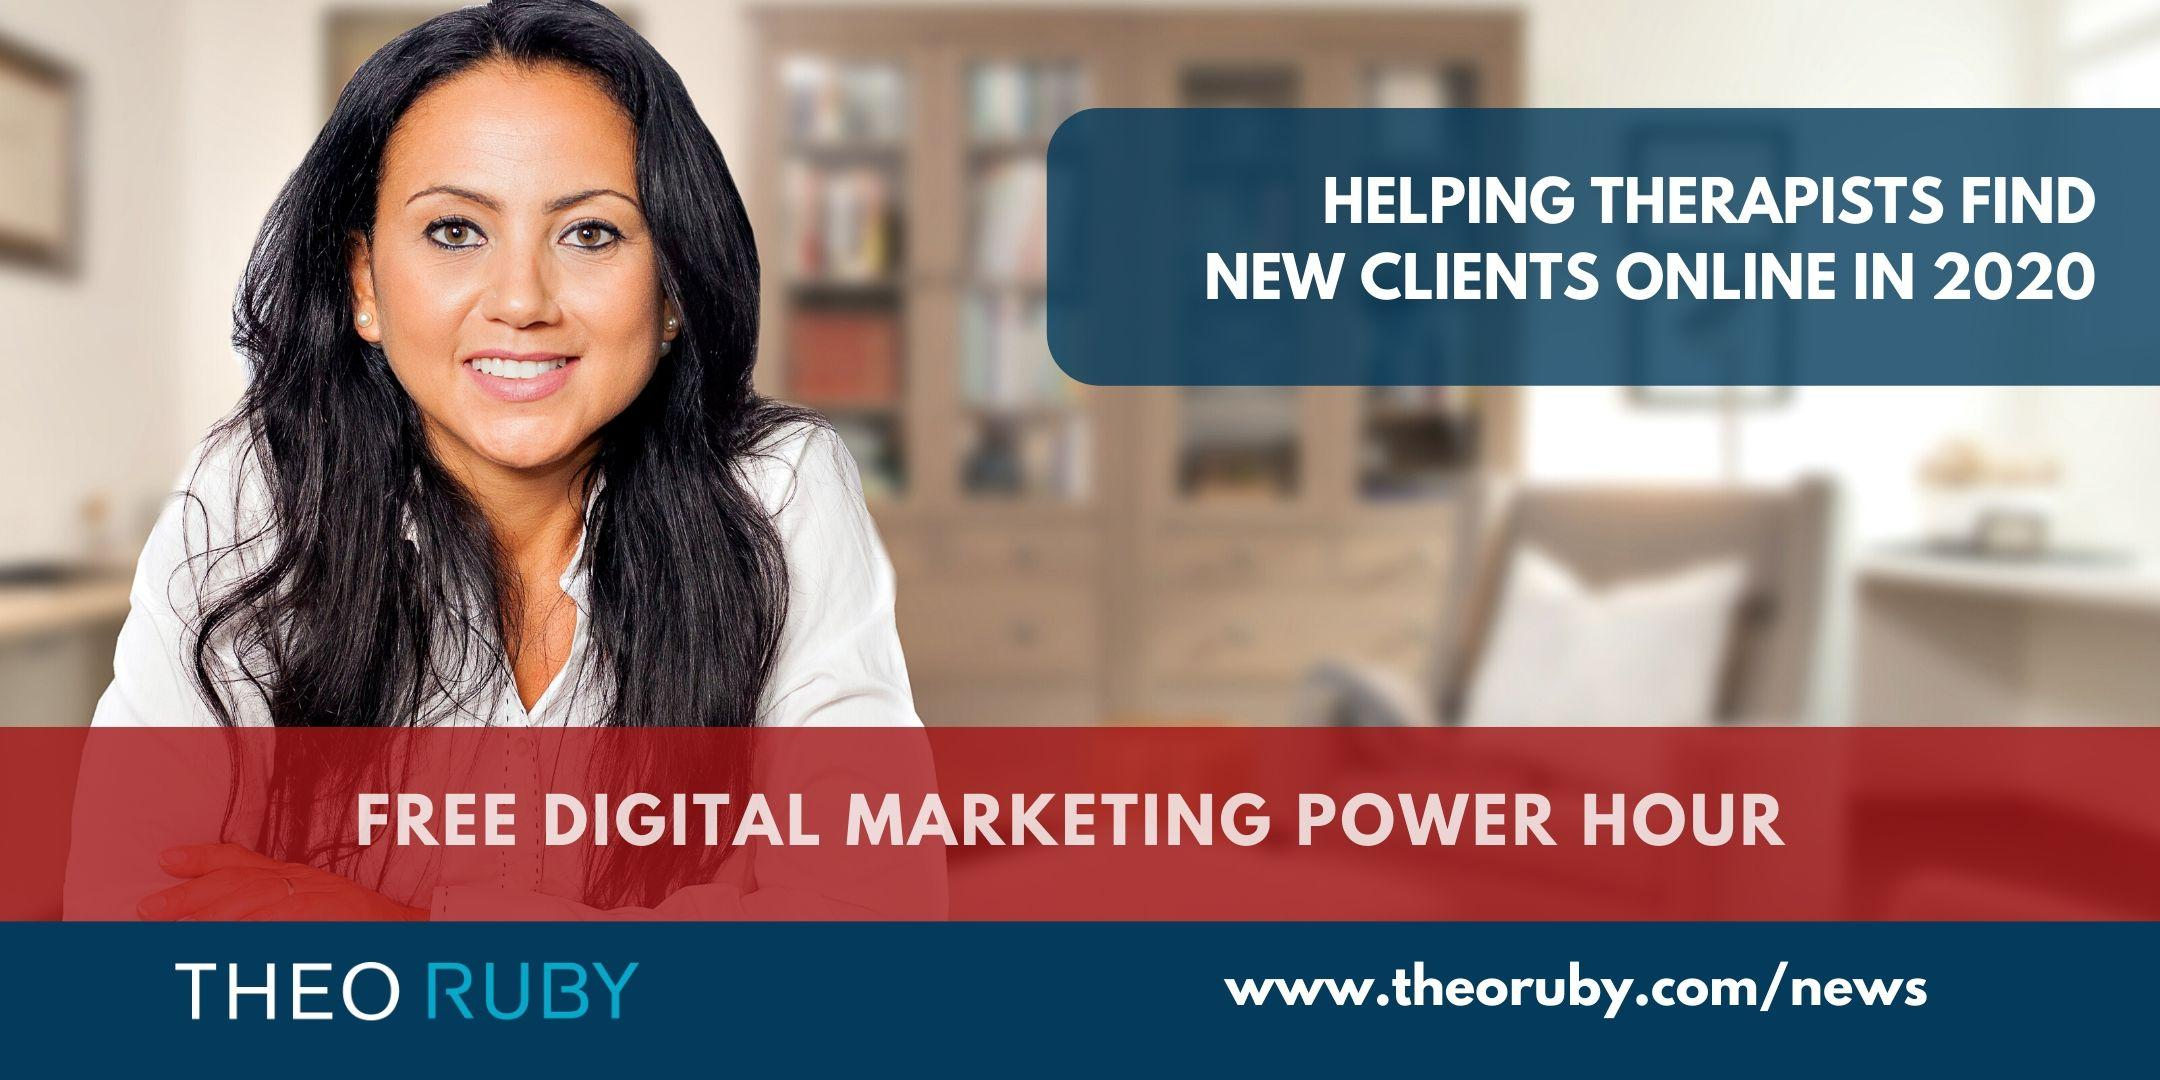 Power Hour 8 | Helping Therapists find new clients online in 2020. 1